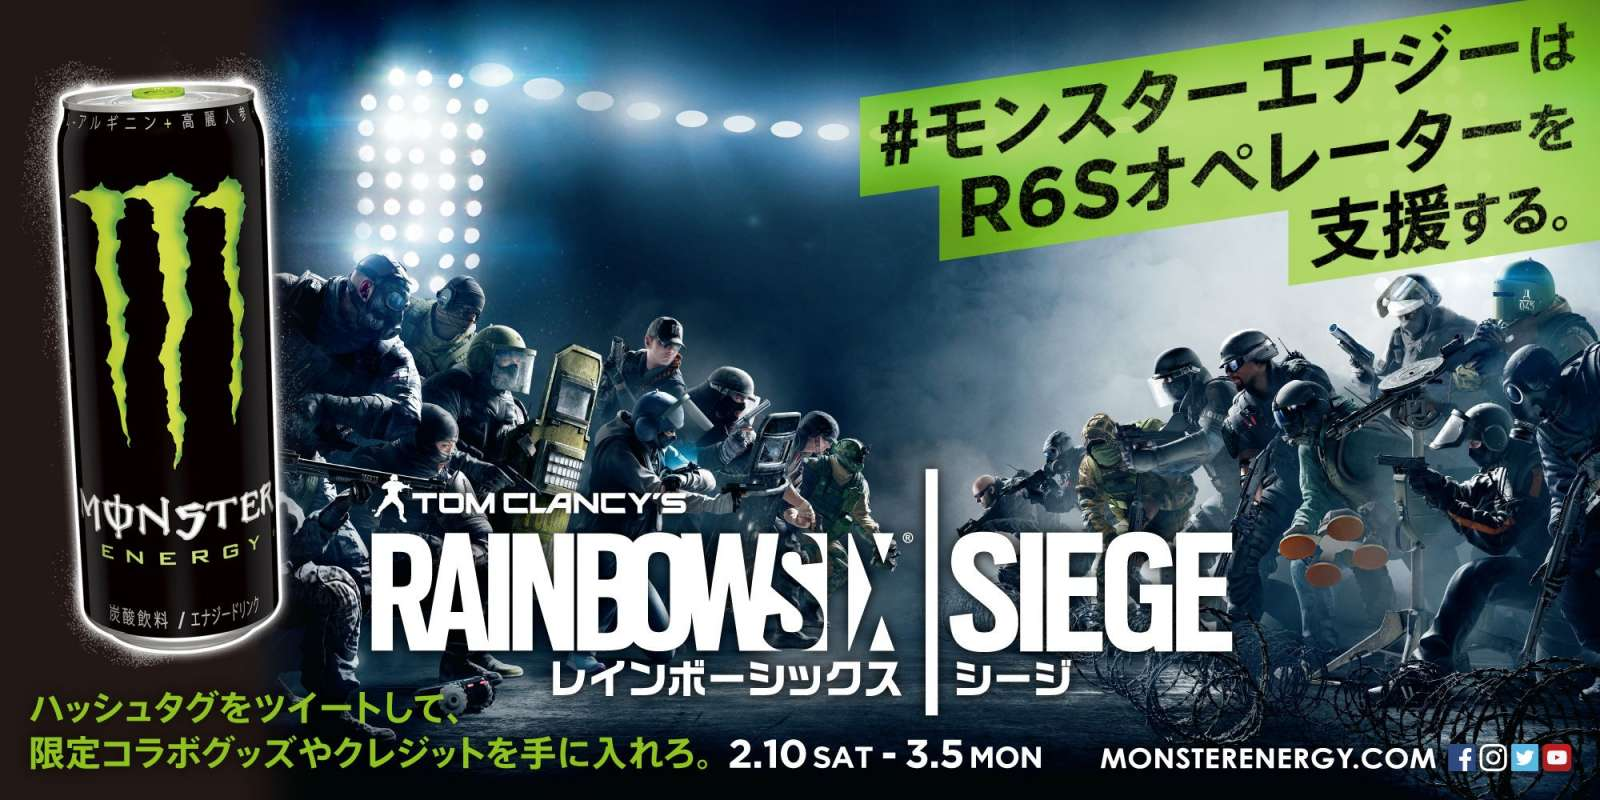 The graphic for digital promo of Rainbow Six Siege in Japan